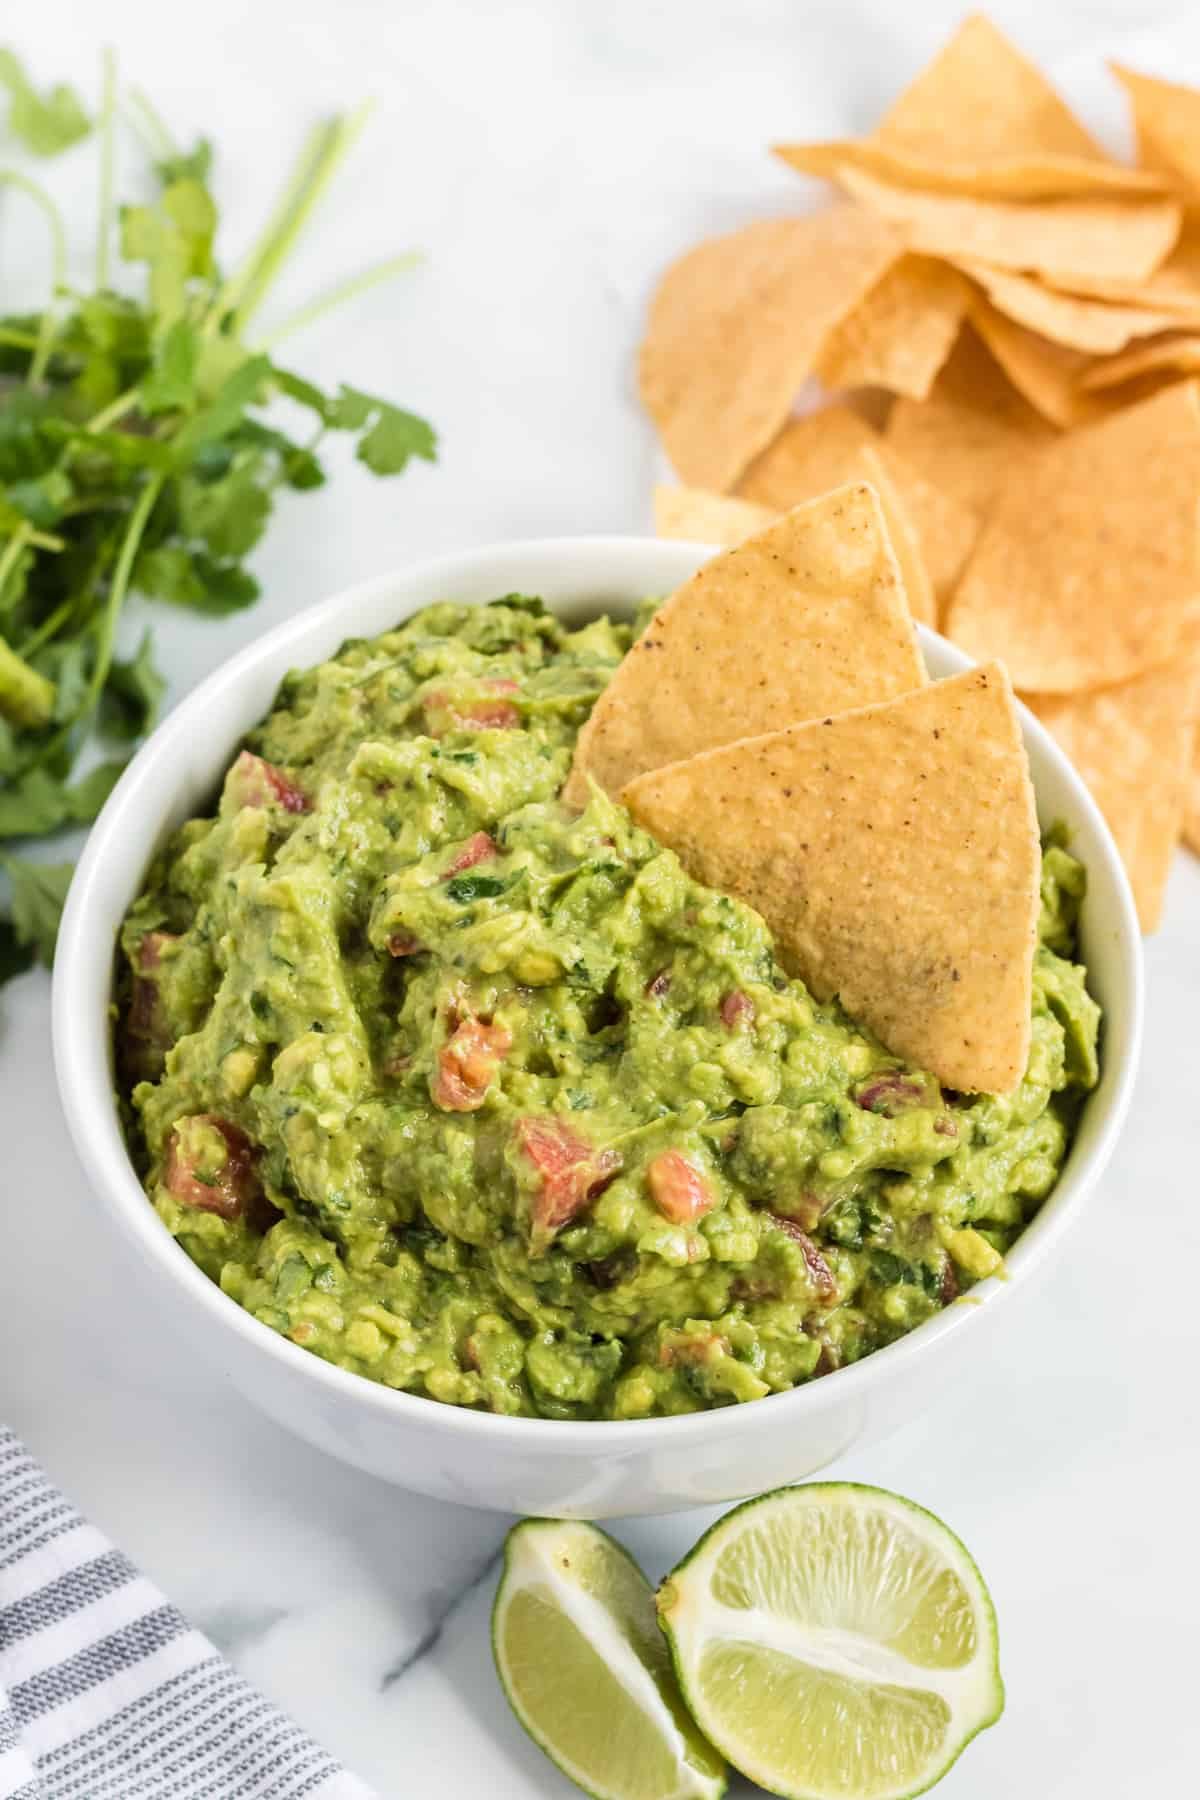 guacamole in a bowl with tortilla chips dipped in it